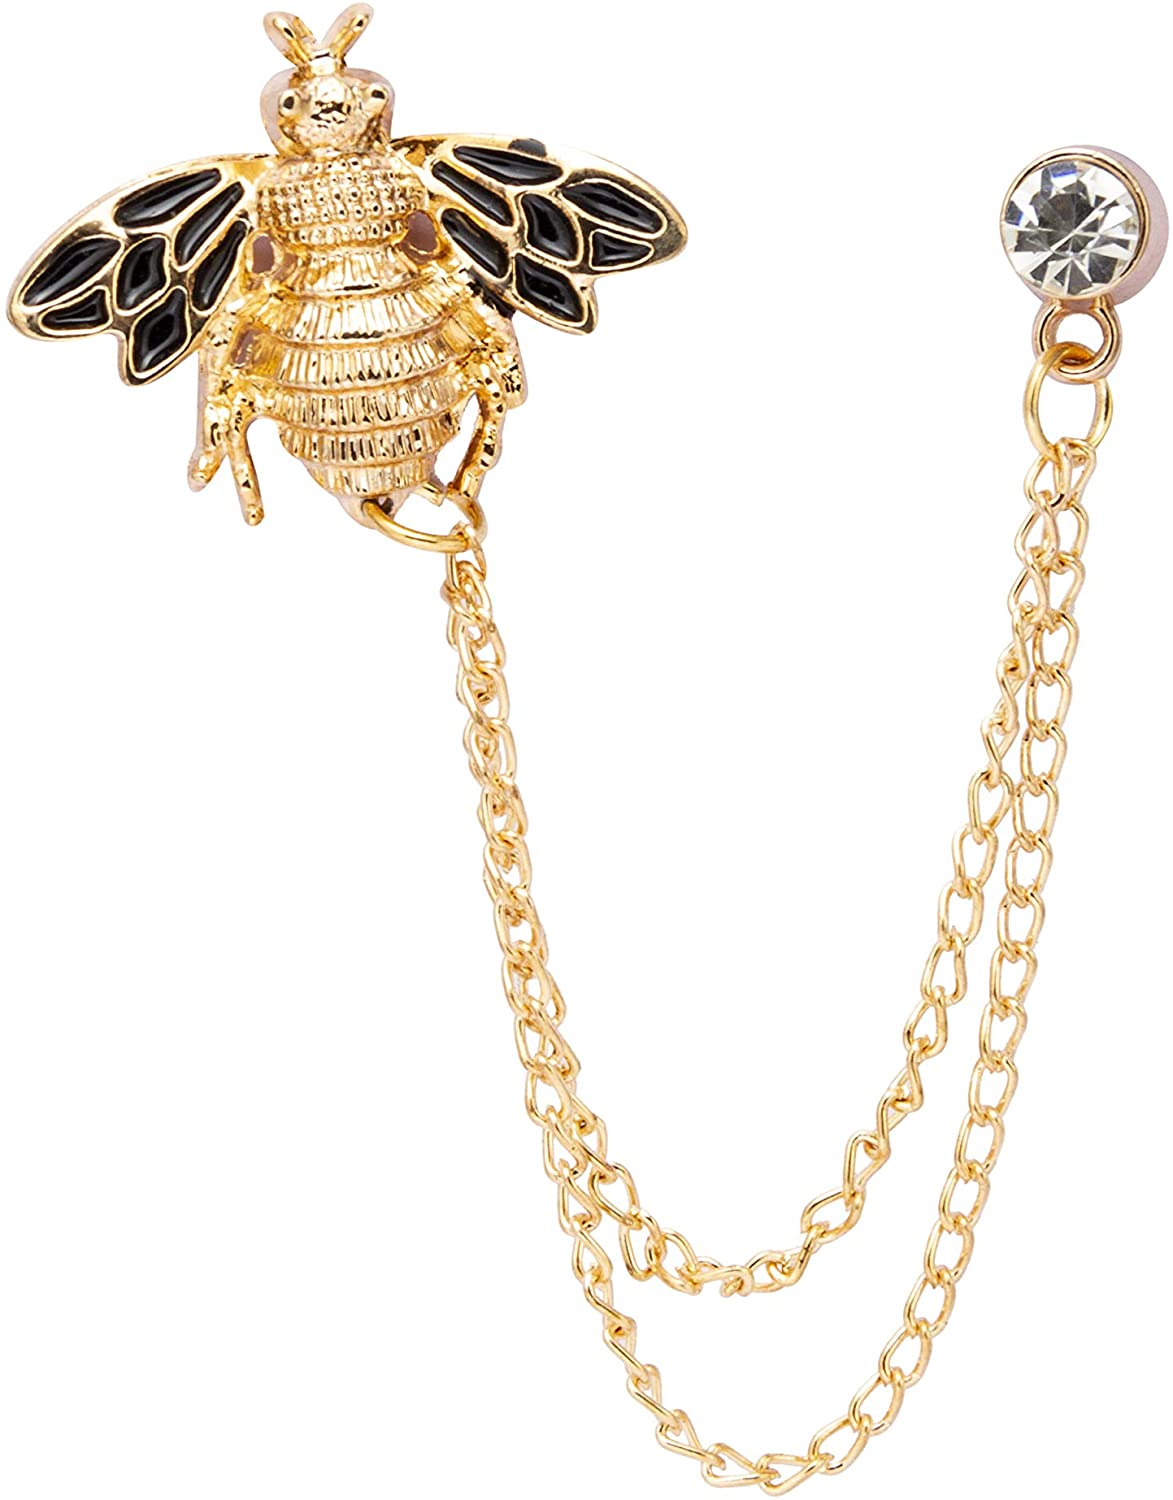 Knighthood Men's Bee With Hanging Chain Brooch Lapel Pin (Golden & Black)